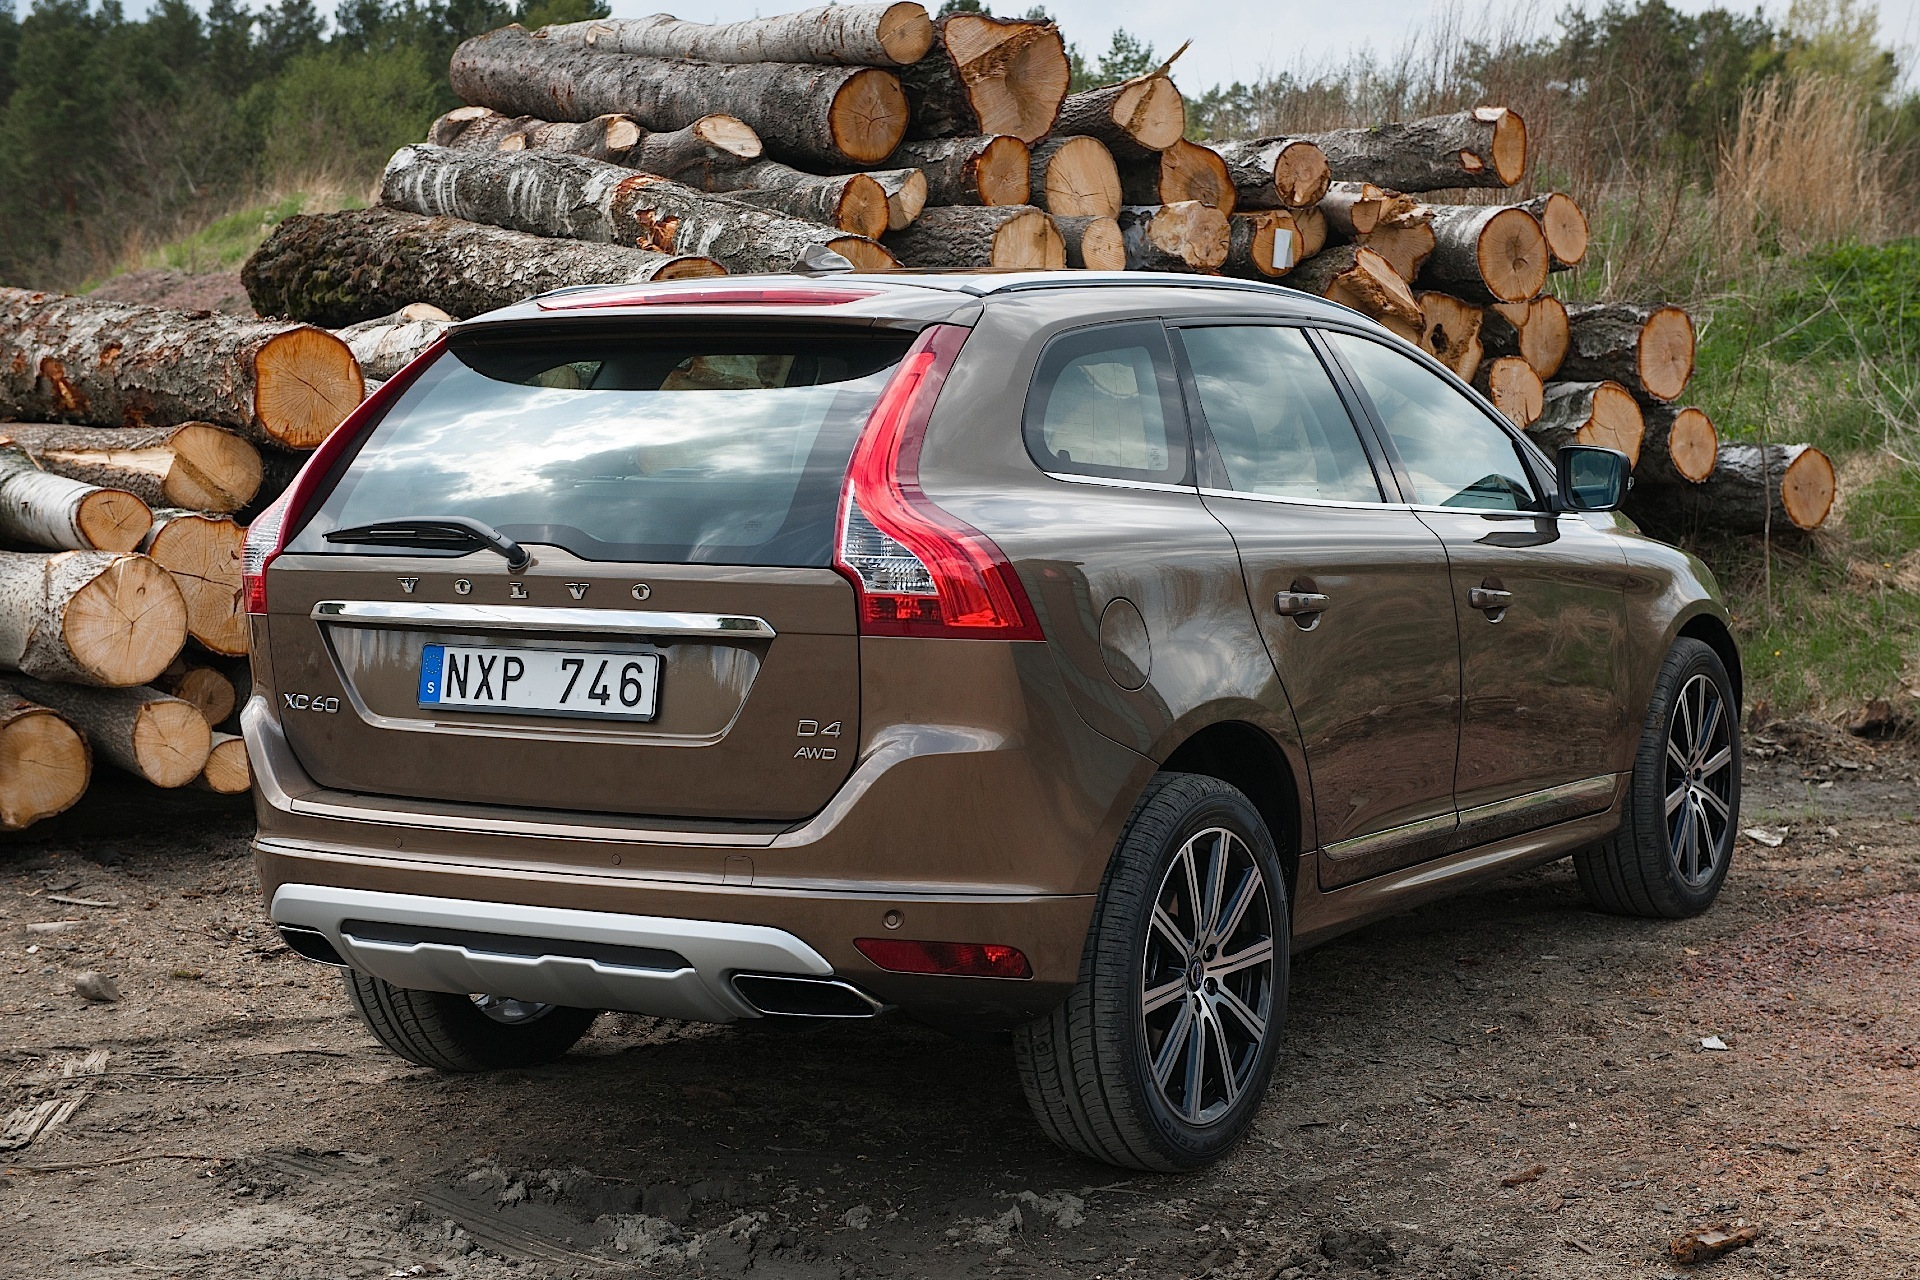 Volvo Xc90 R Design Available In The Uk Sportiest Volvo Suv Ever Photo Gallery 102331 likewise 2015 Volvo Xc60 in addition 2016 Volvo Xc60 Redesign Changes besides Volvo Xc60 2013 as well Volvo Xc60 R Design Interior. on 2015 volvo xc60 awd